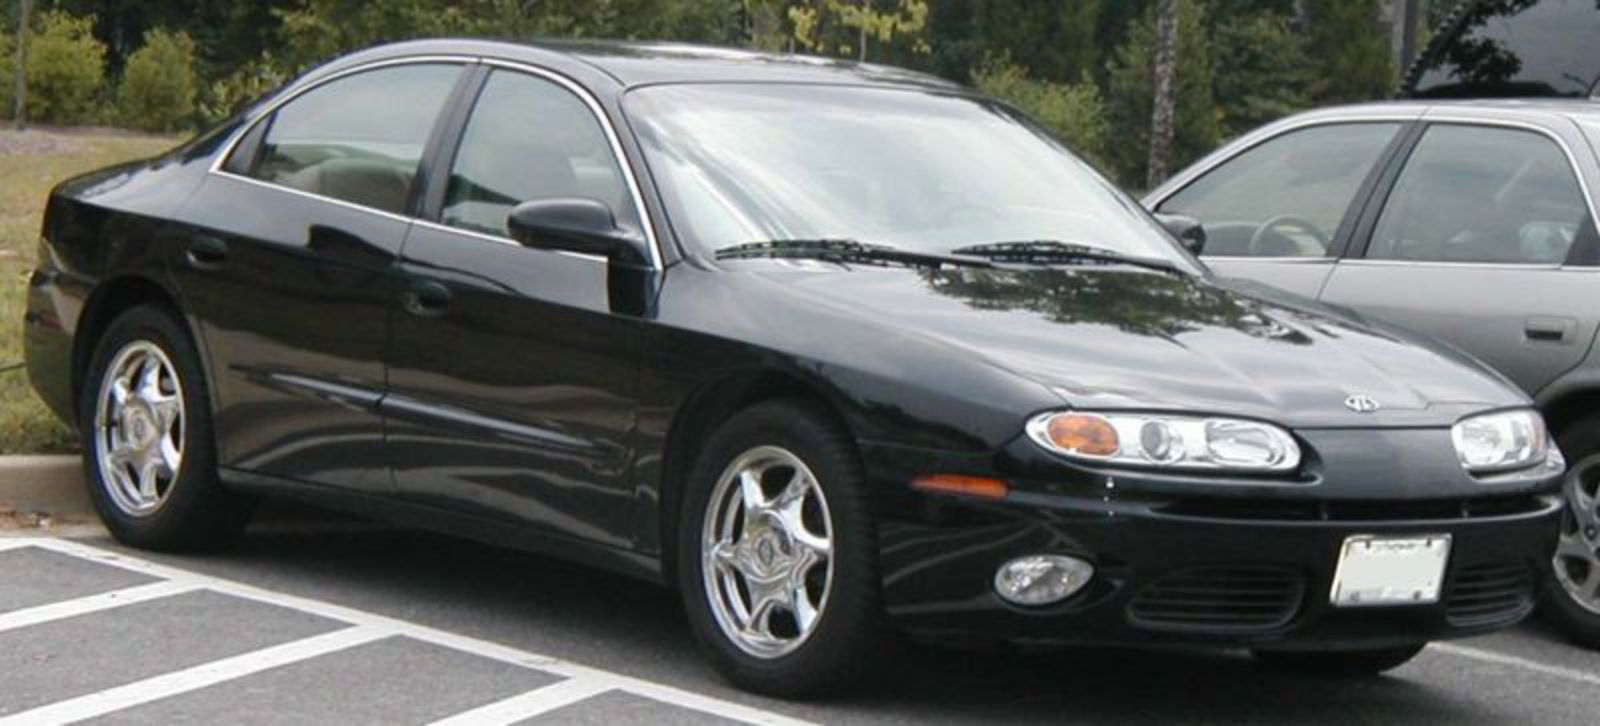 Oldsmobile Aurora 2003 - cars catalog, specs, features, photos, videos,